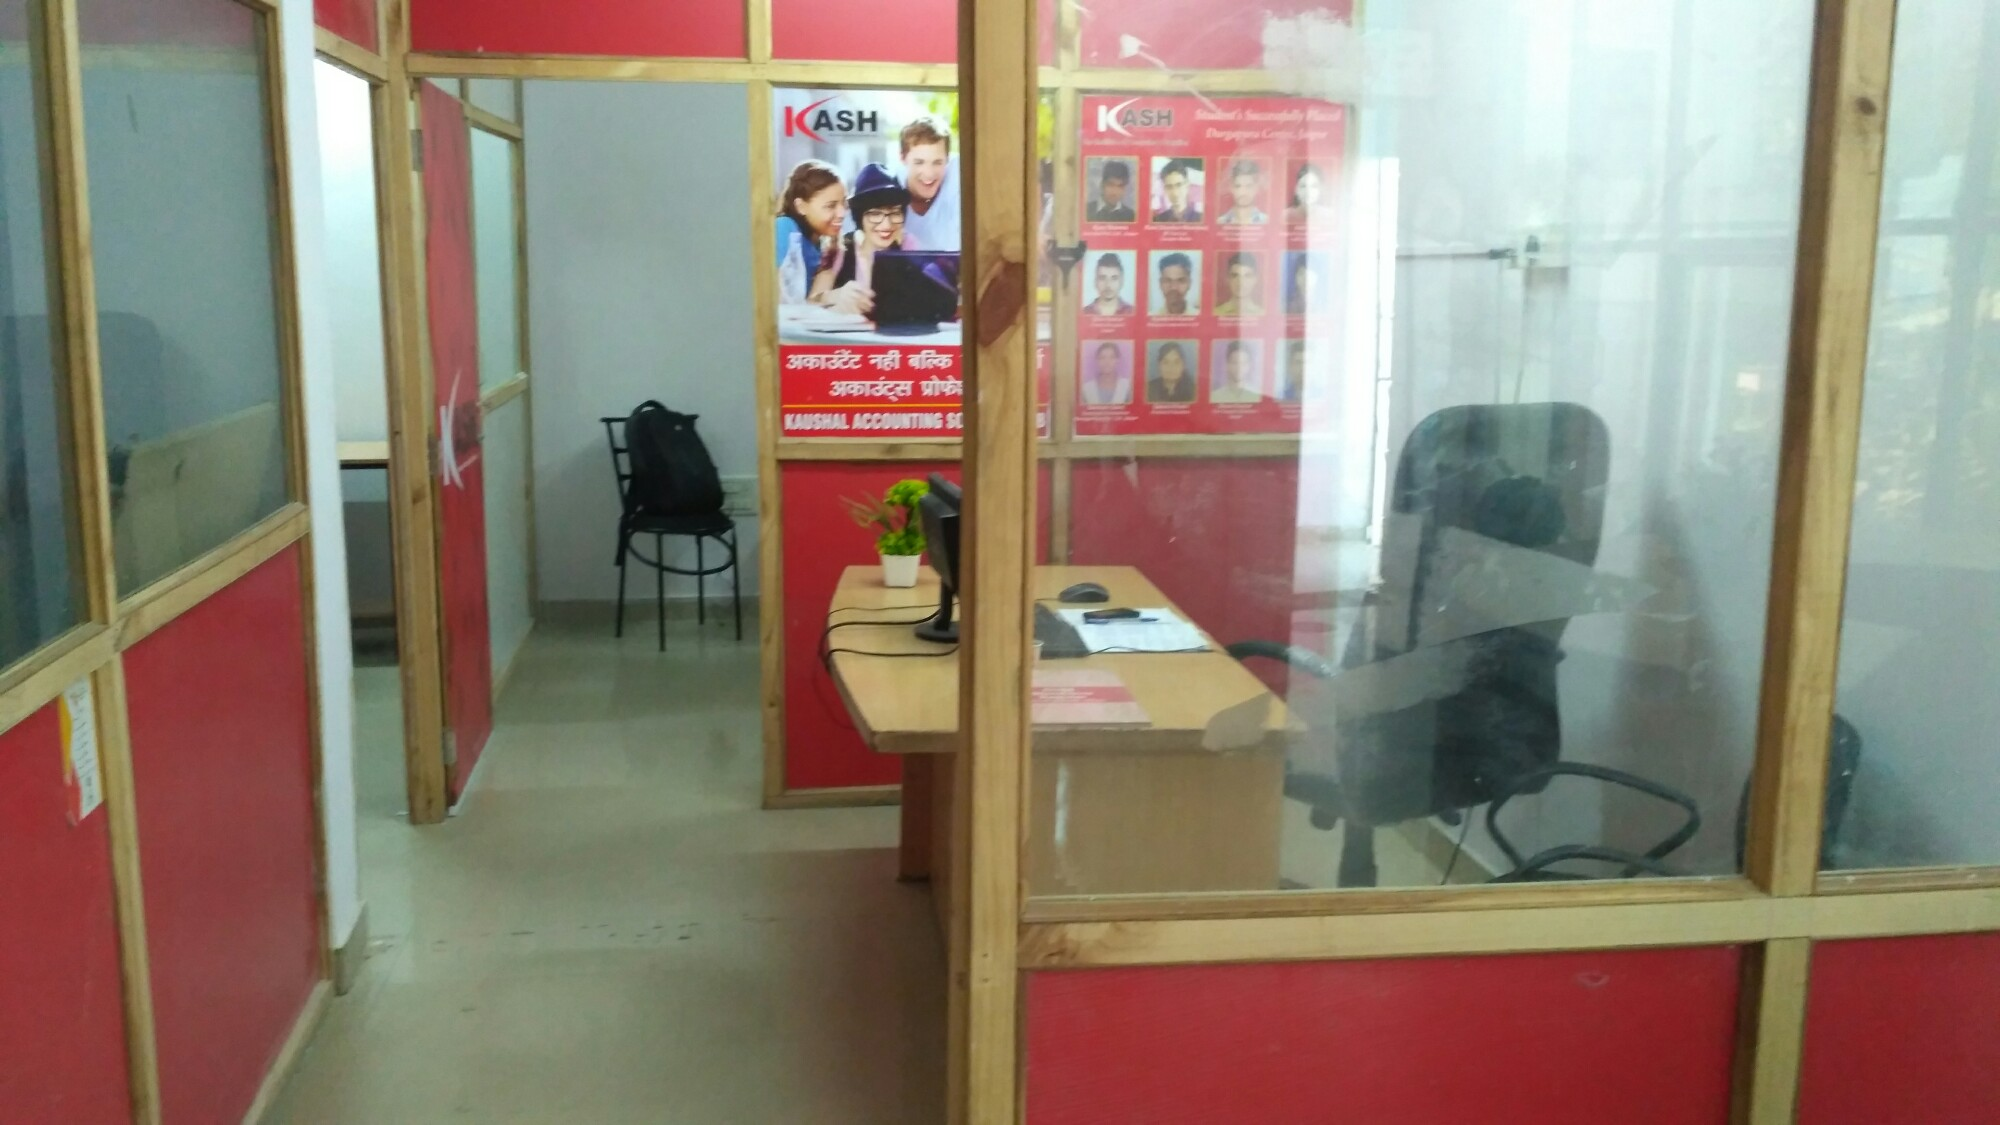 Kaushal Accounting Solution Hub in Mansarovar, Jaipur-302020